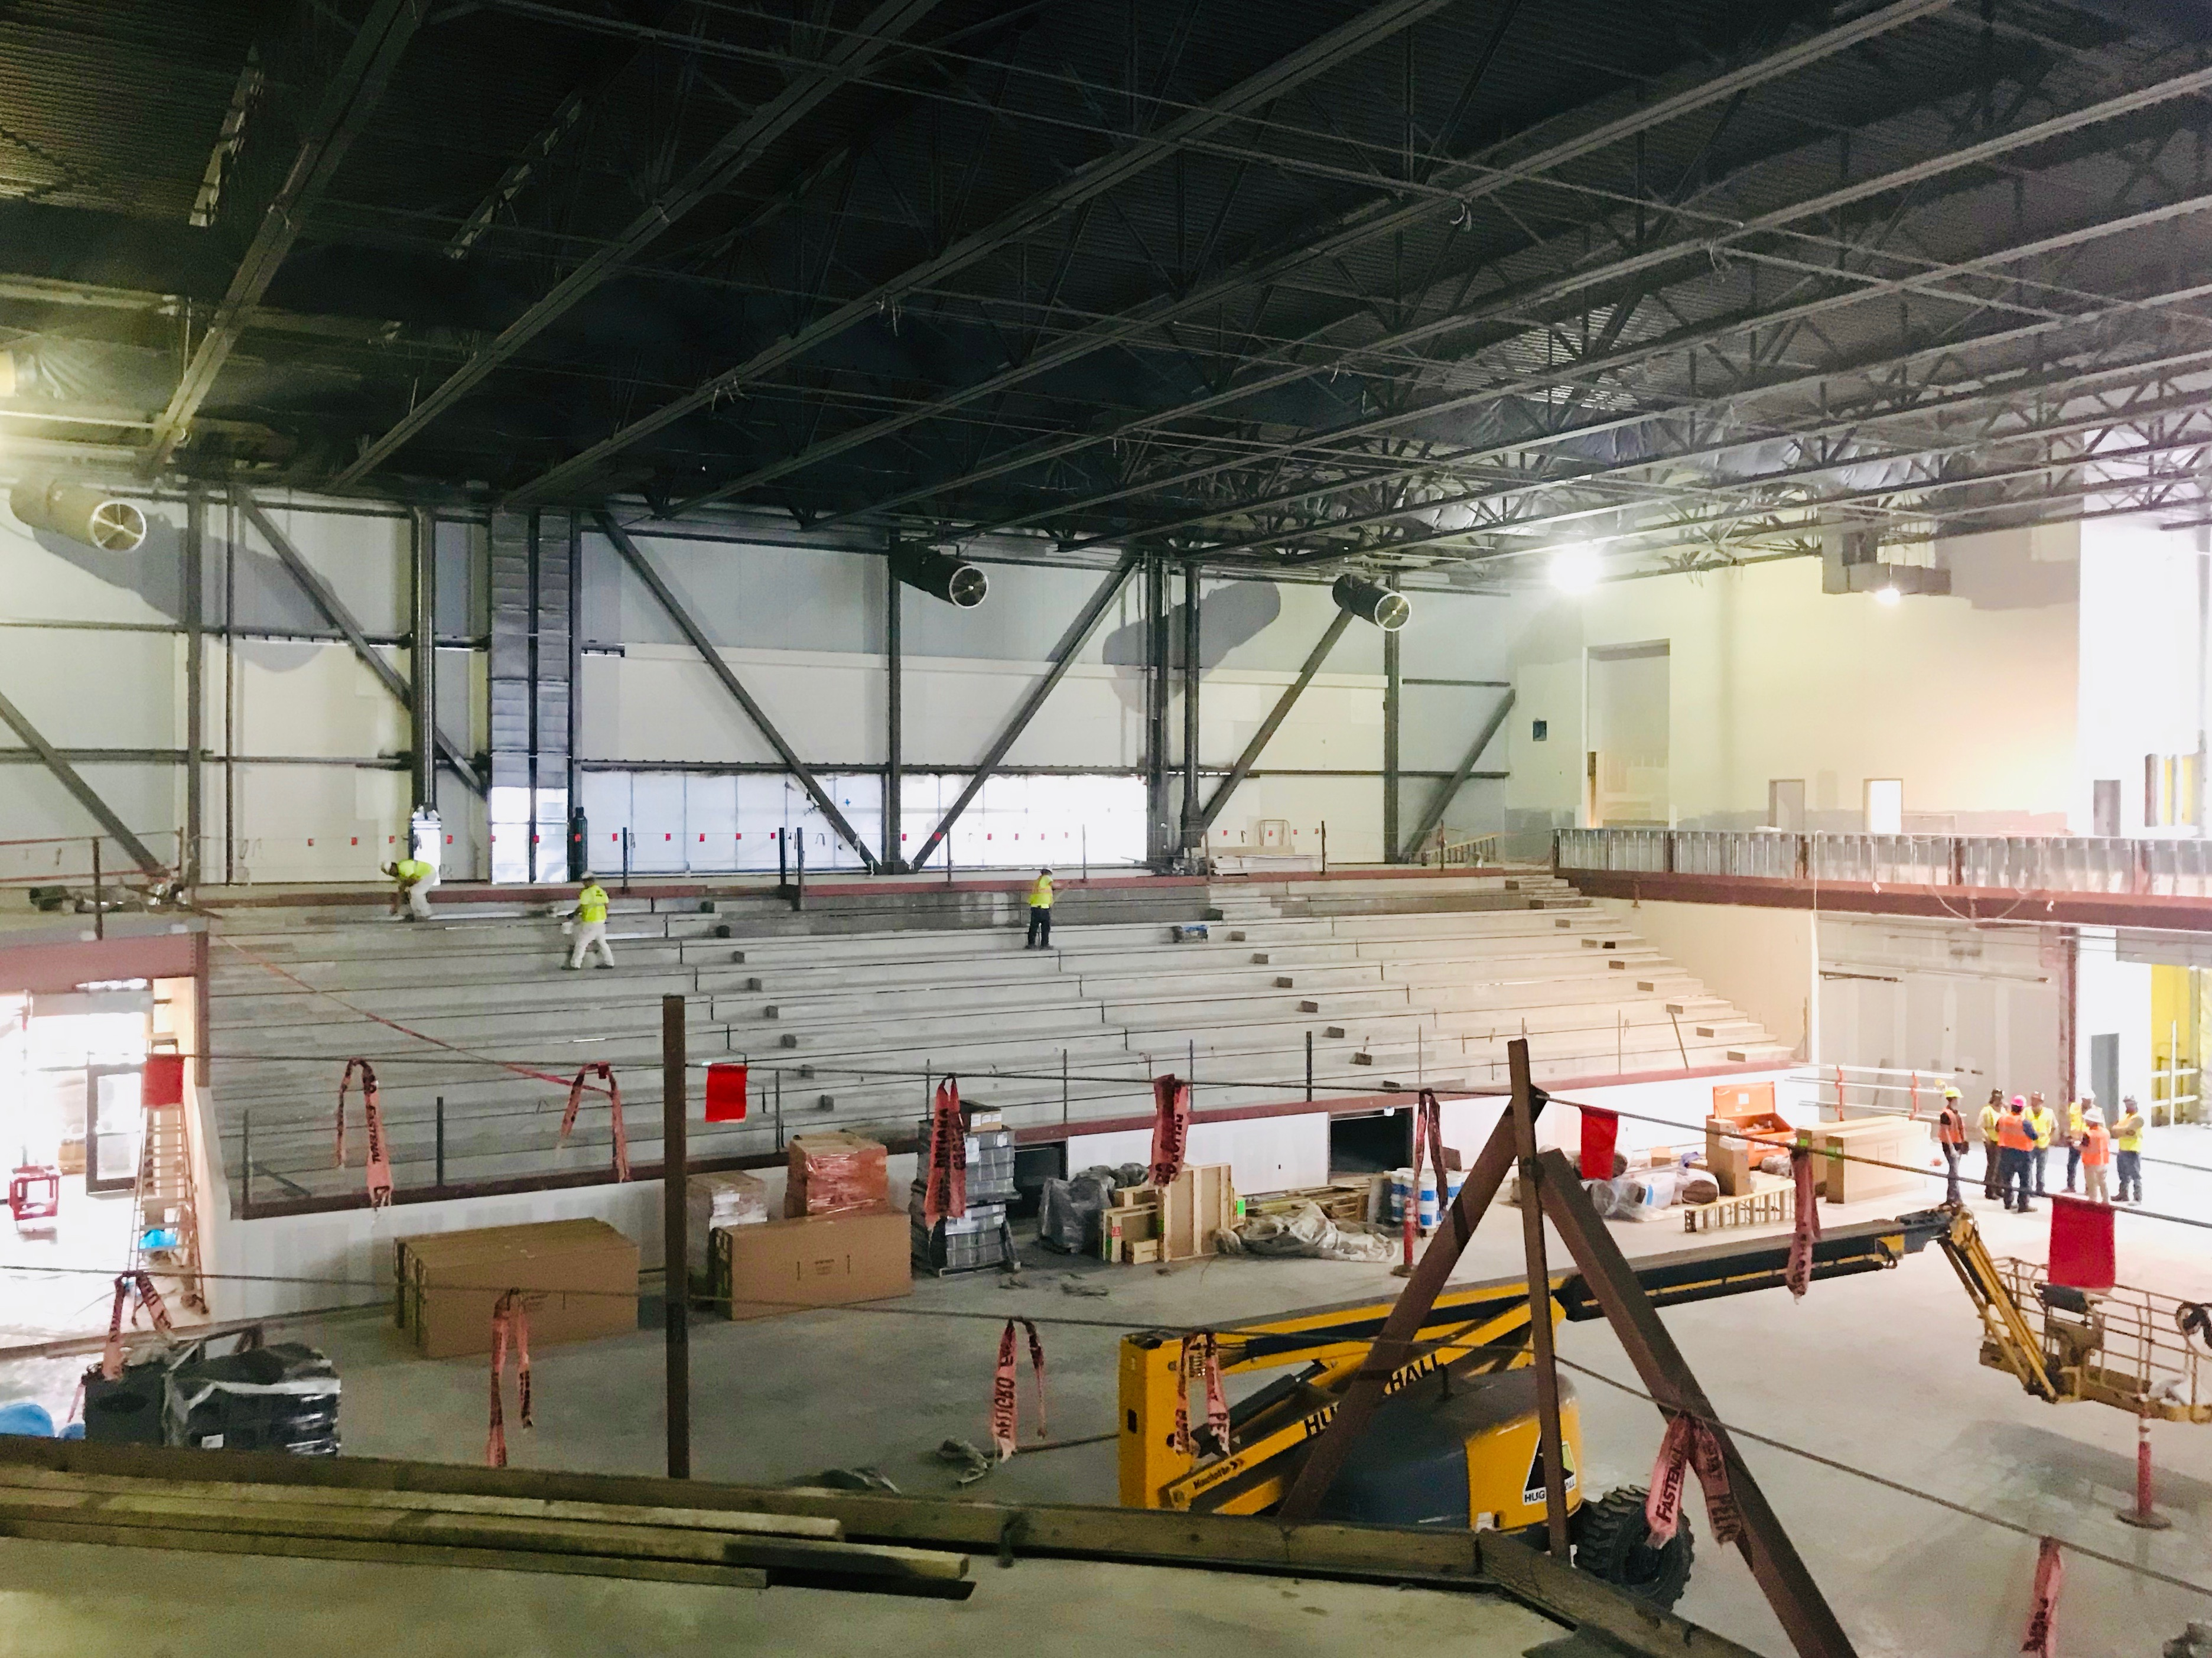 Arena view, concourse level